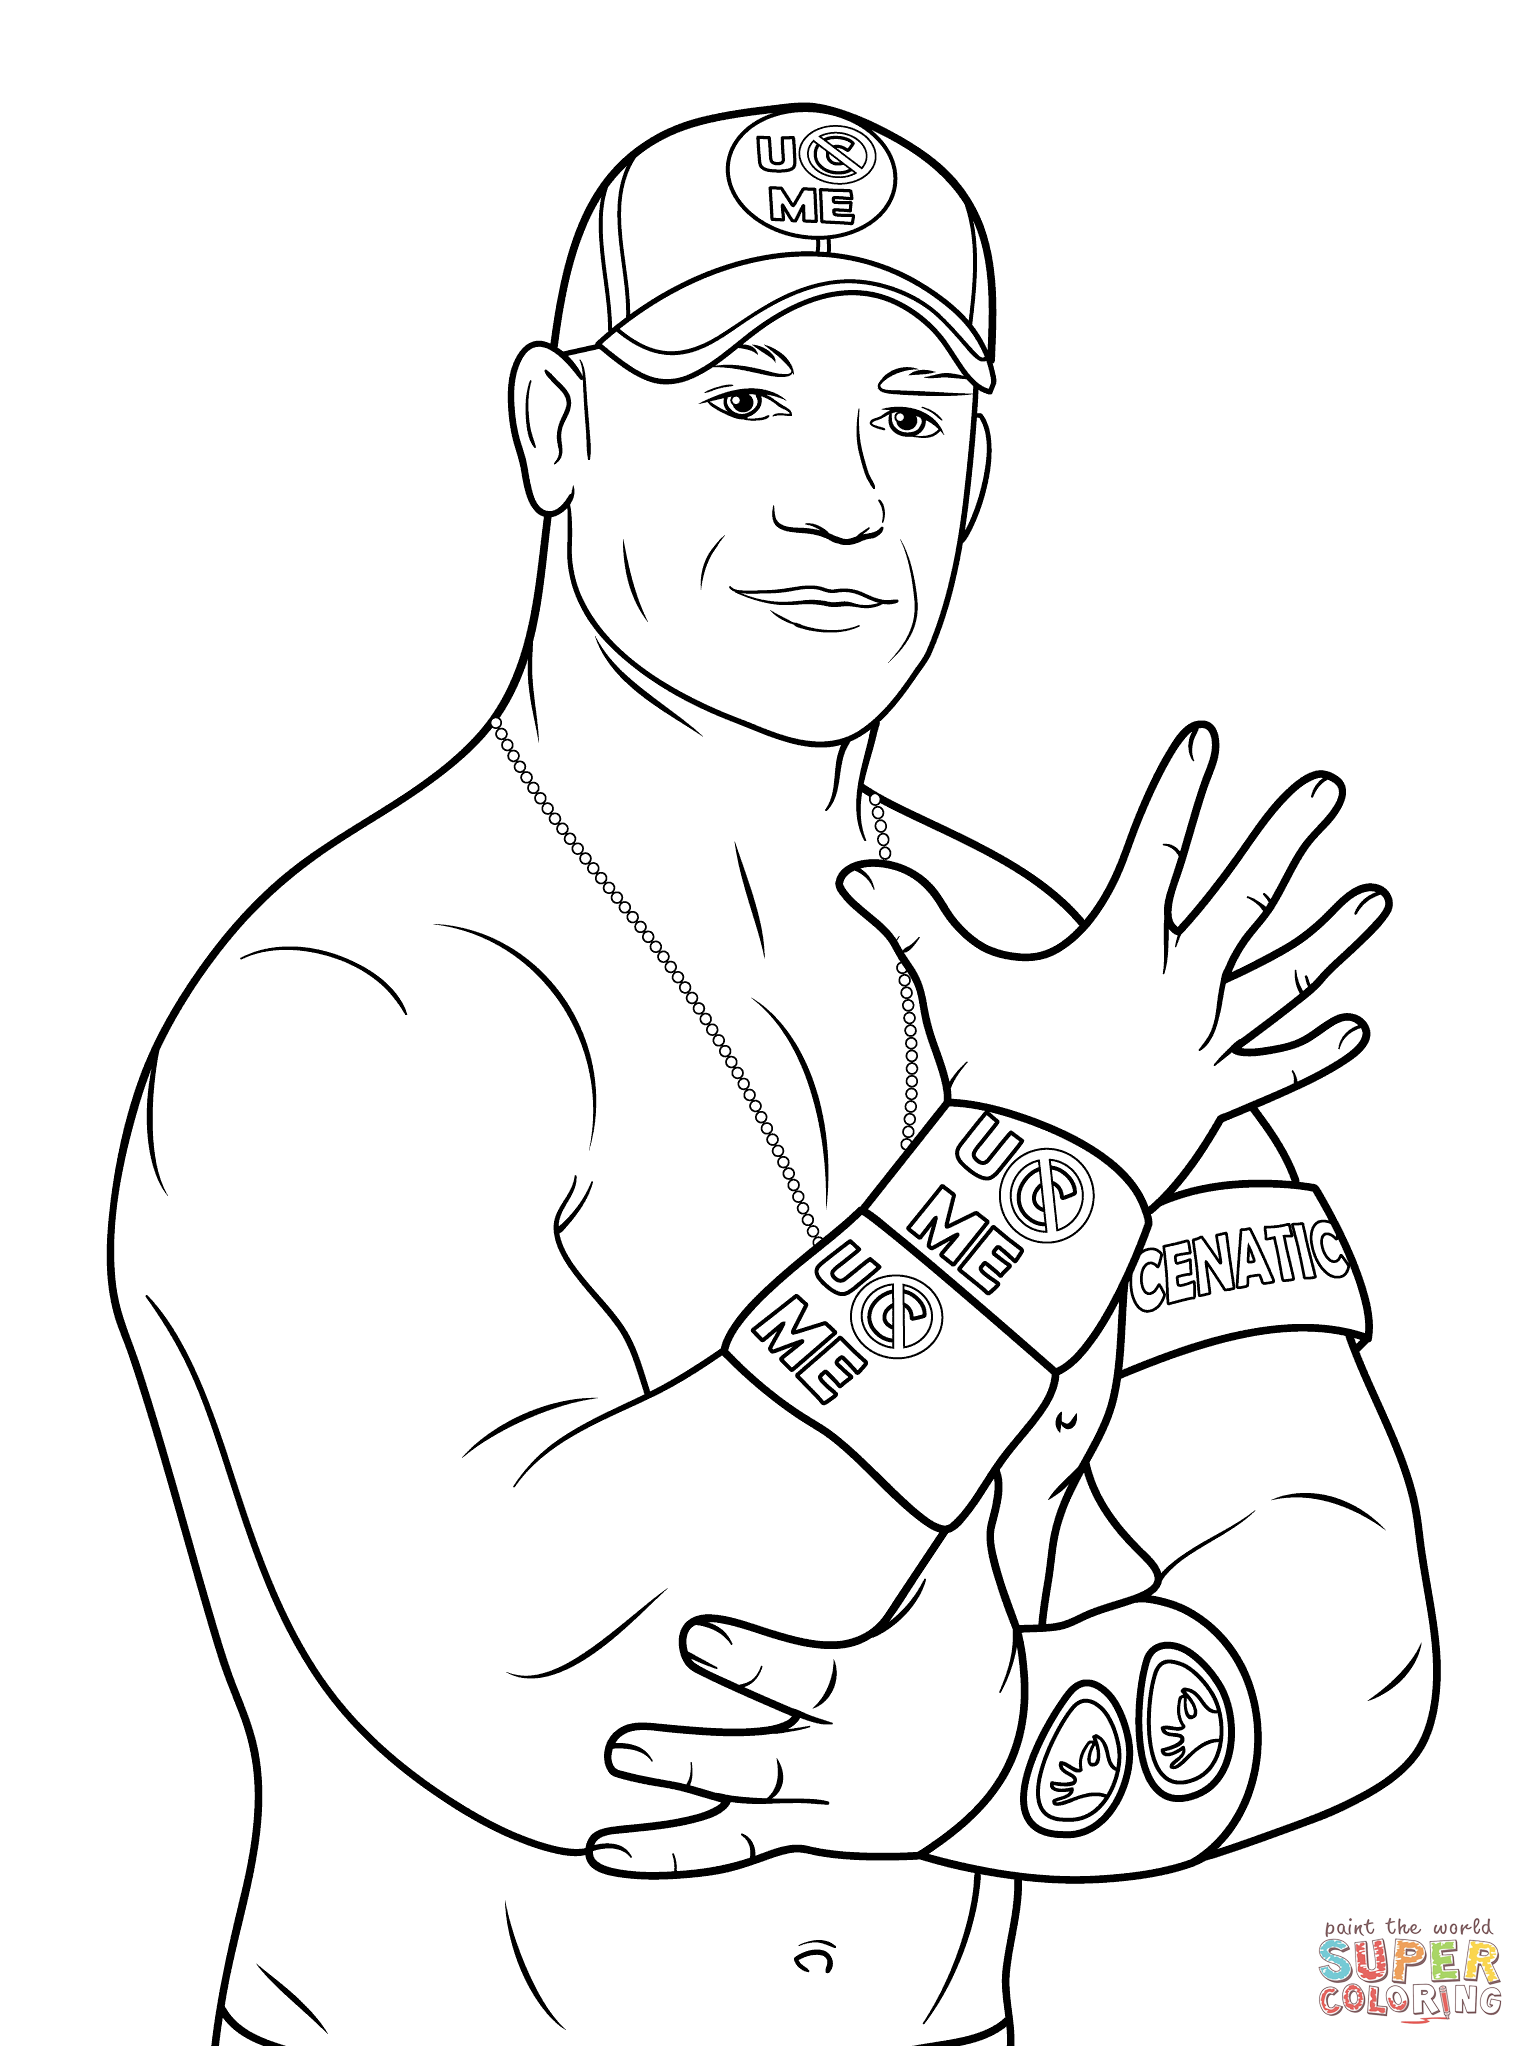 wwe coloring wwe wrestling coloring pages sketch coloring page wwe coloring